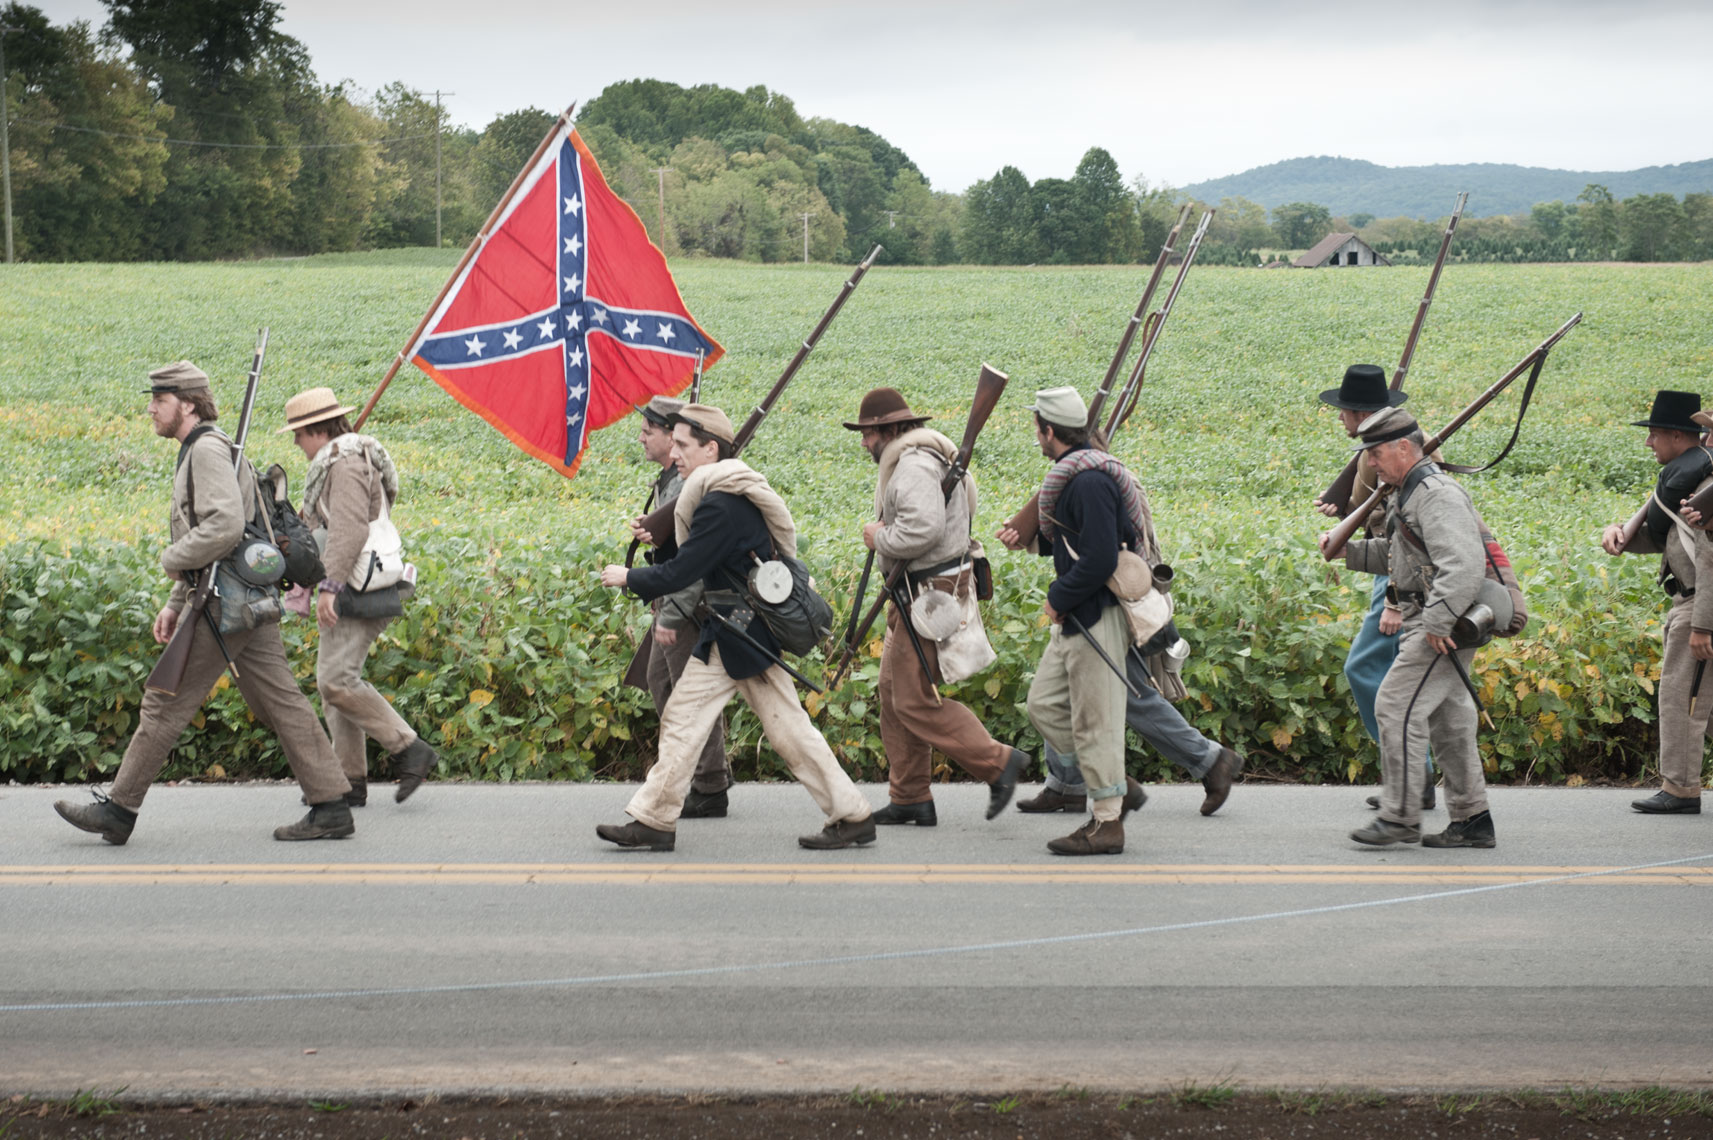 Civil War reenactors at Antietam, by Virginia photographer Mike Morgan.